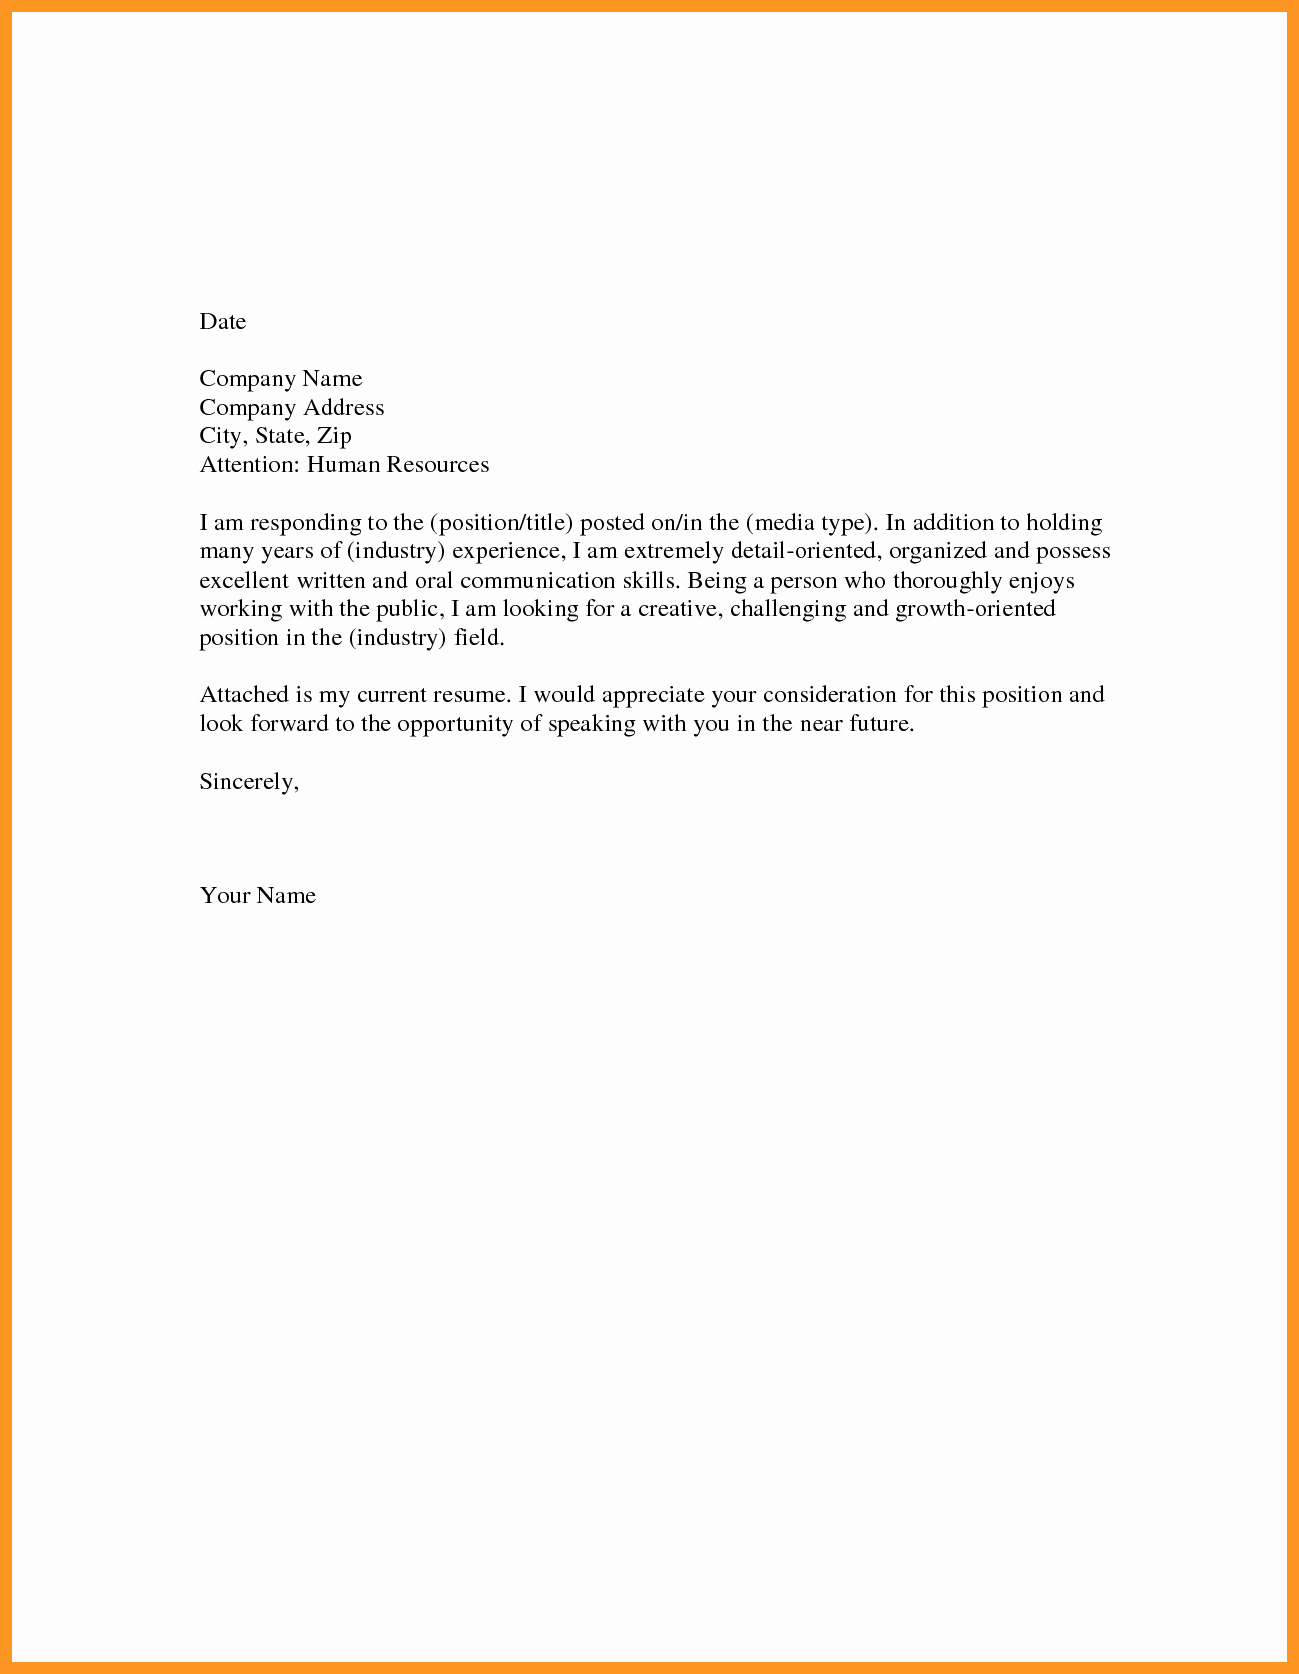 Resume and Cover Letter formats Elegant Resume Cover Letter format Examples